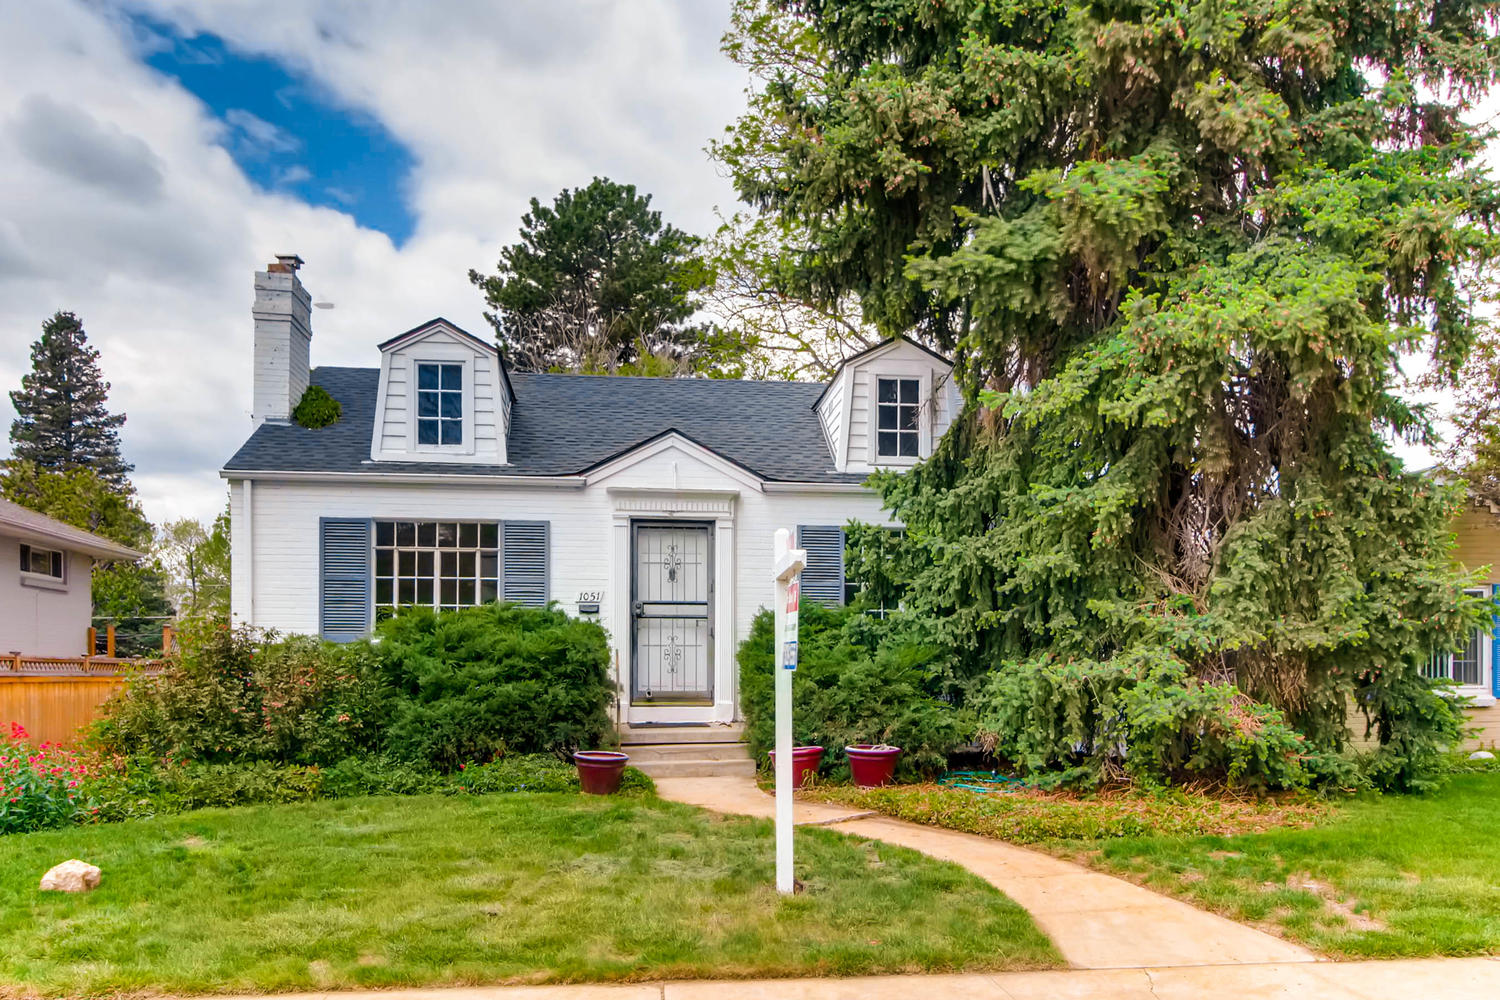 Sold! Fantastic opportunity in Montclair